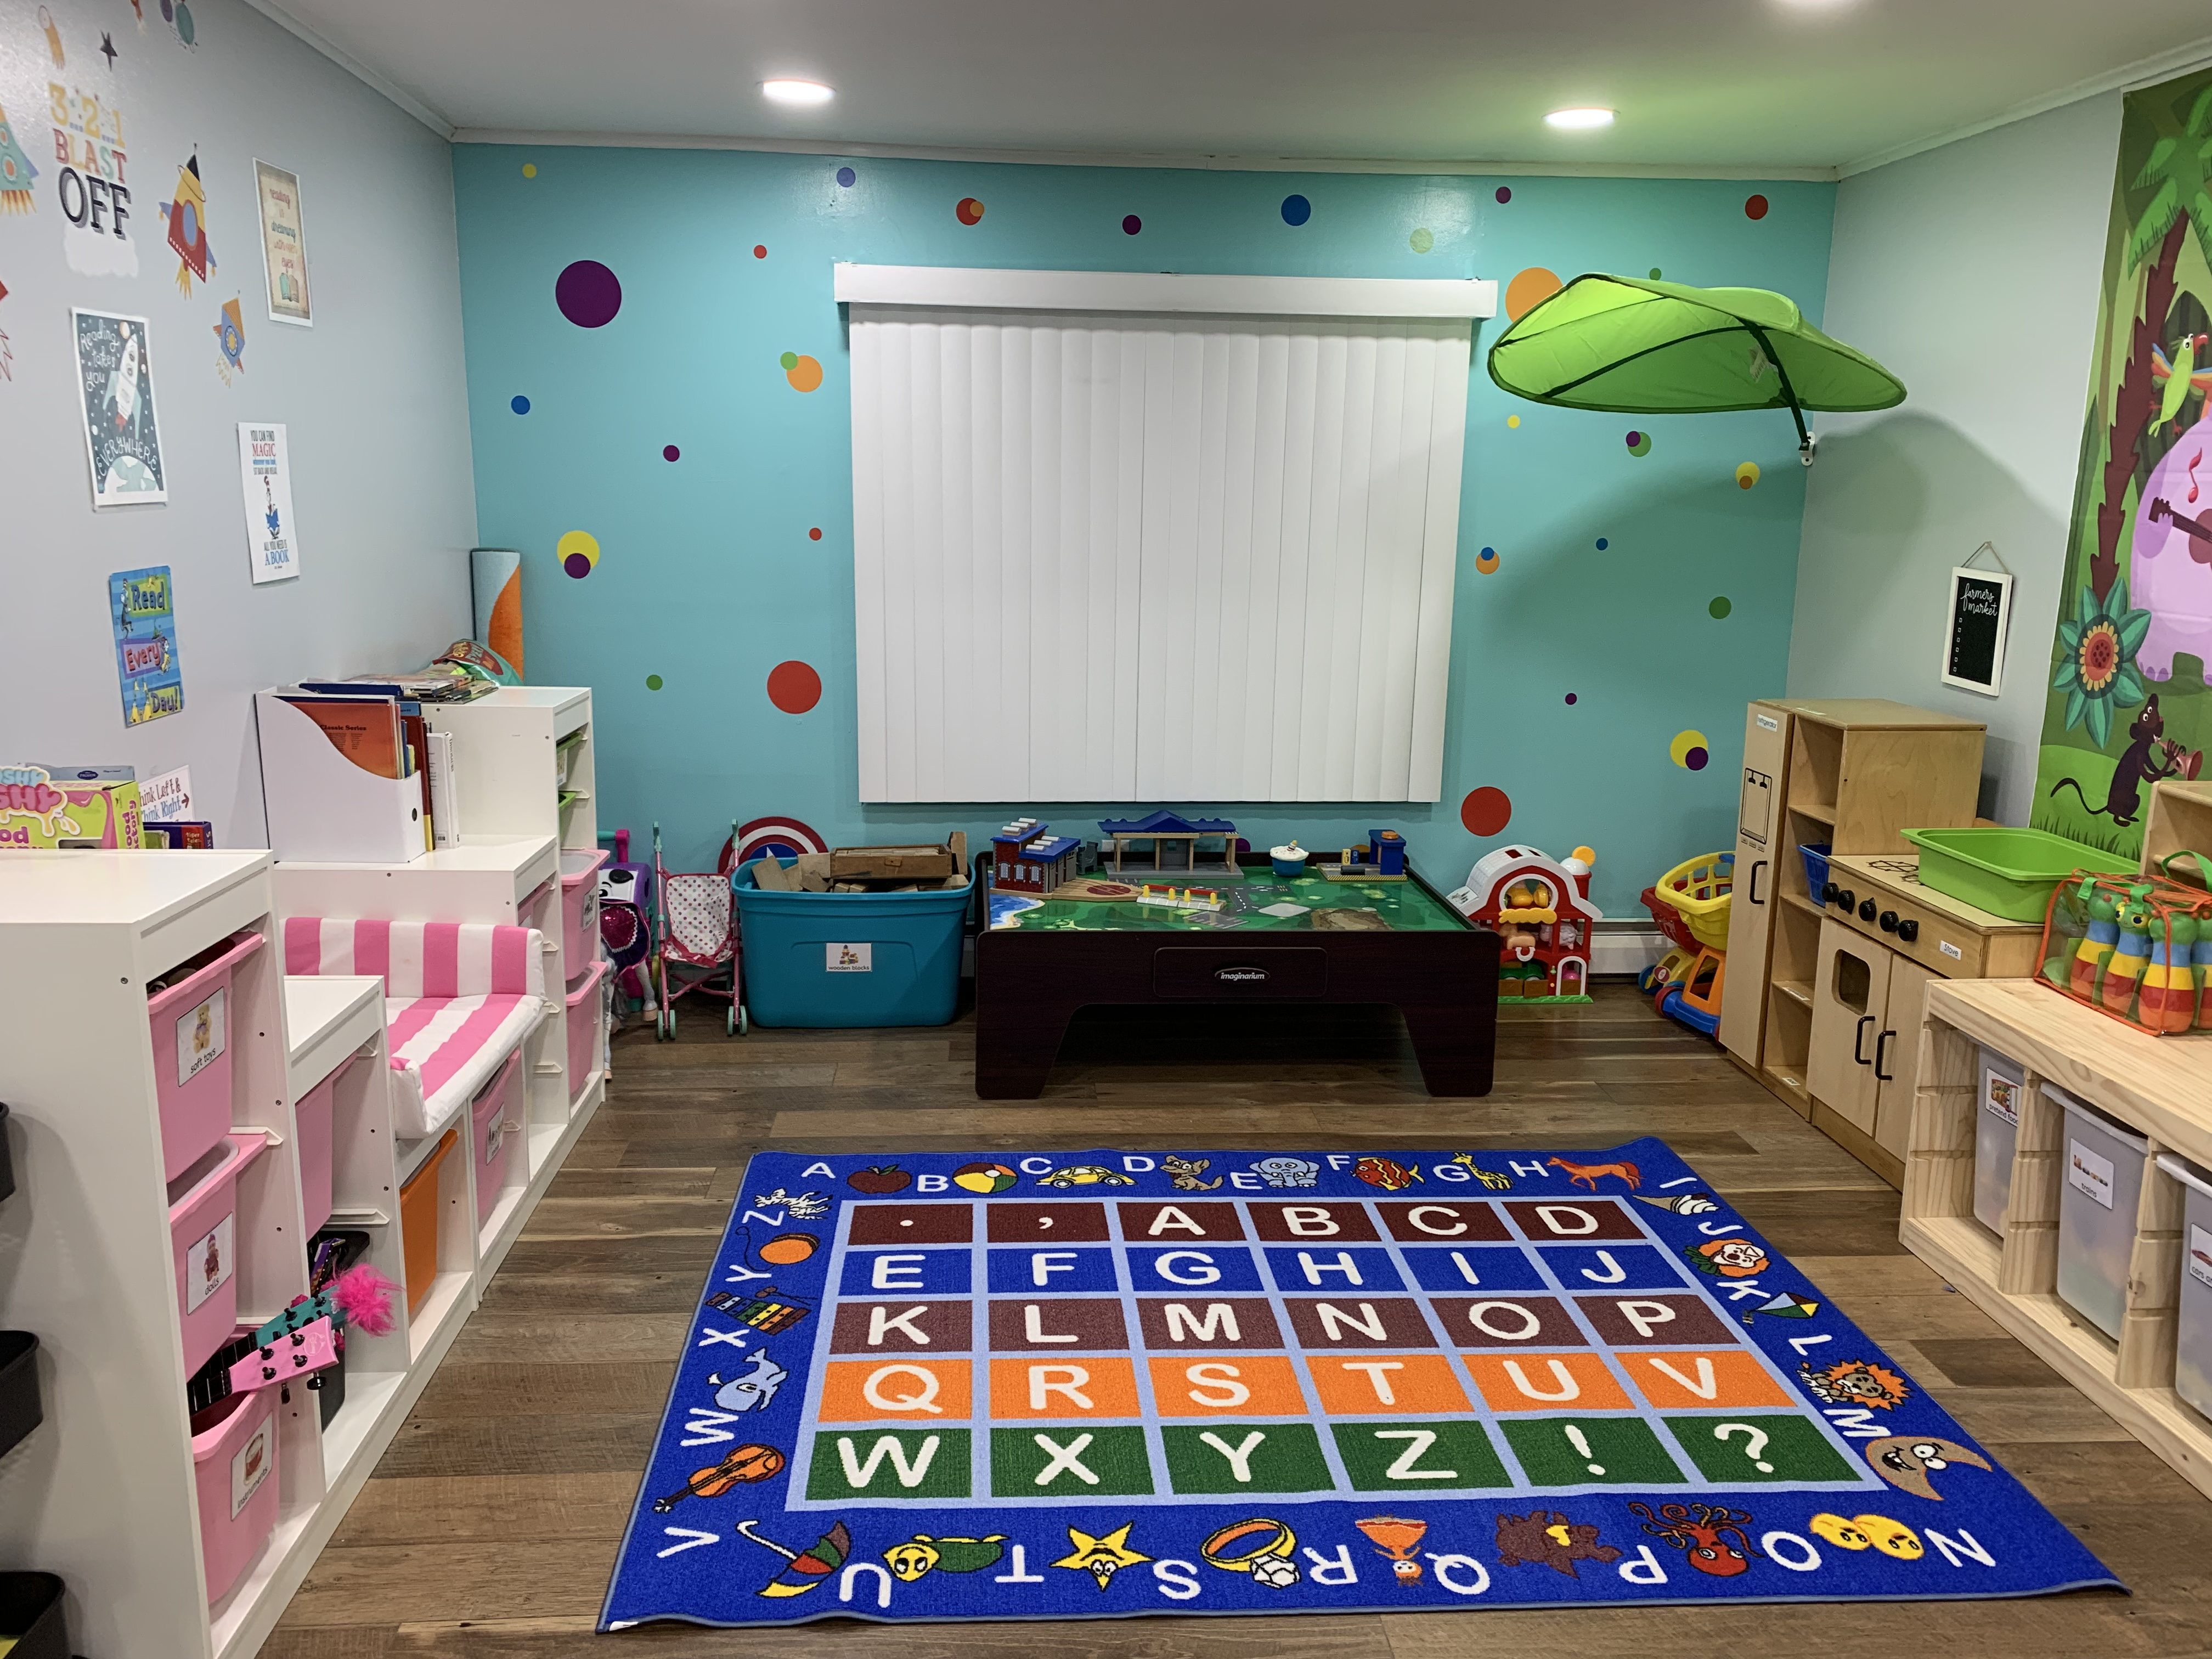 Learning Ladder Family Daycare